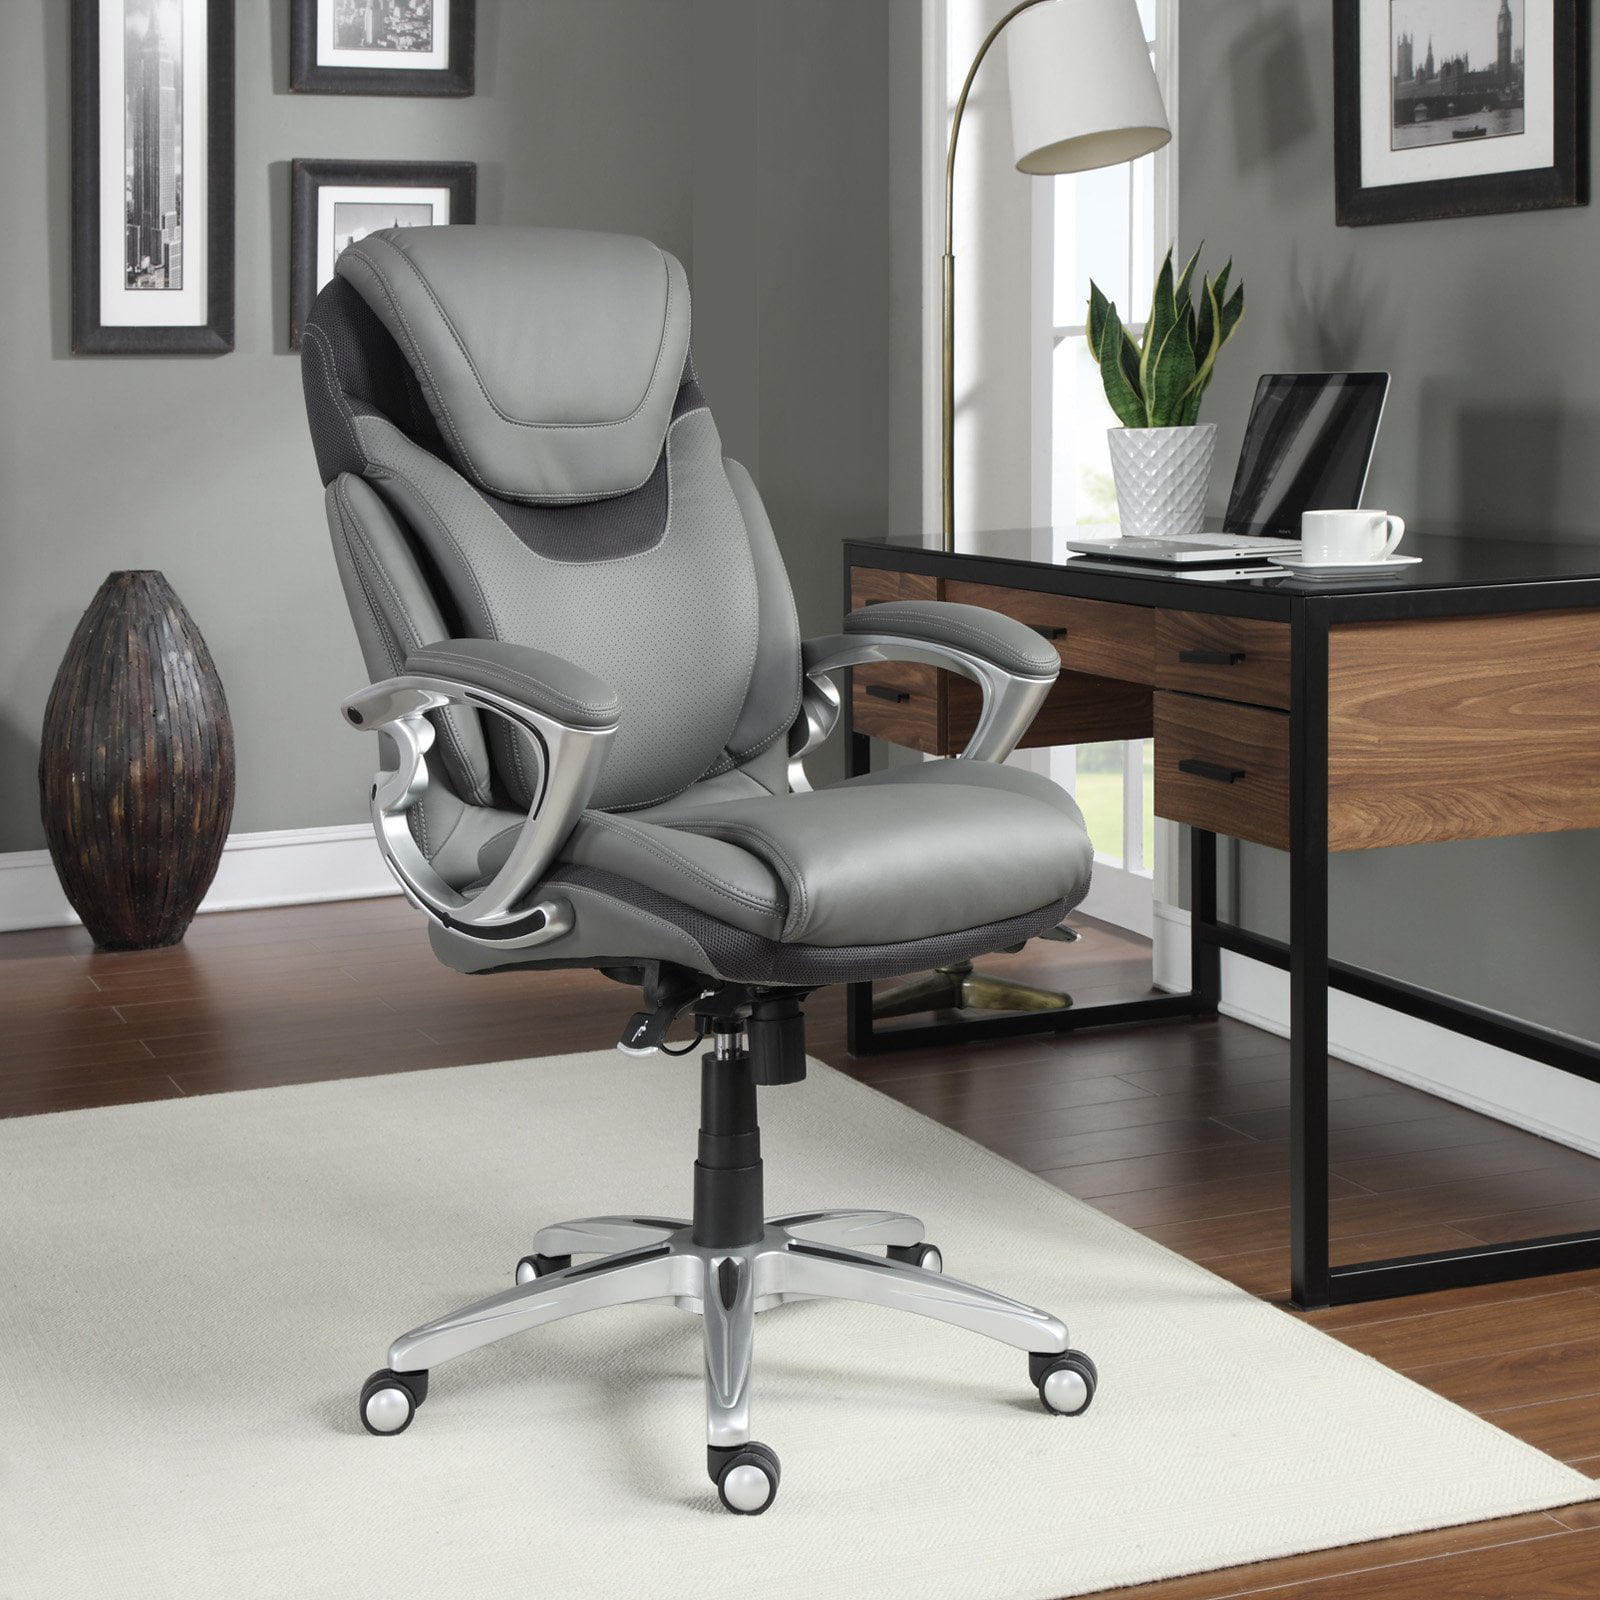 Serta AIR Health & Wellness Leather Executive fice Chair Light